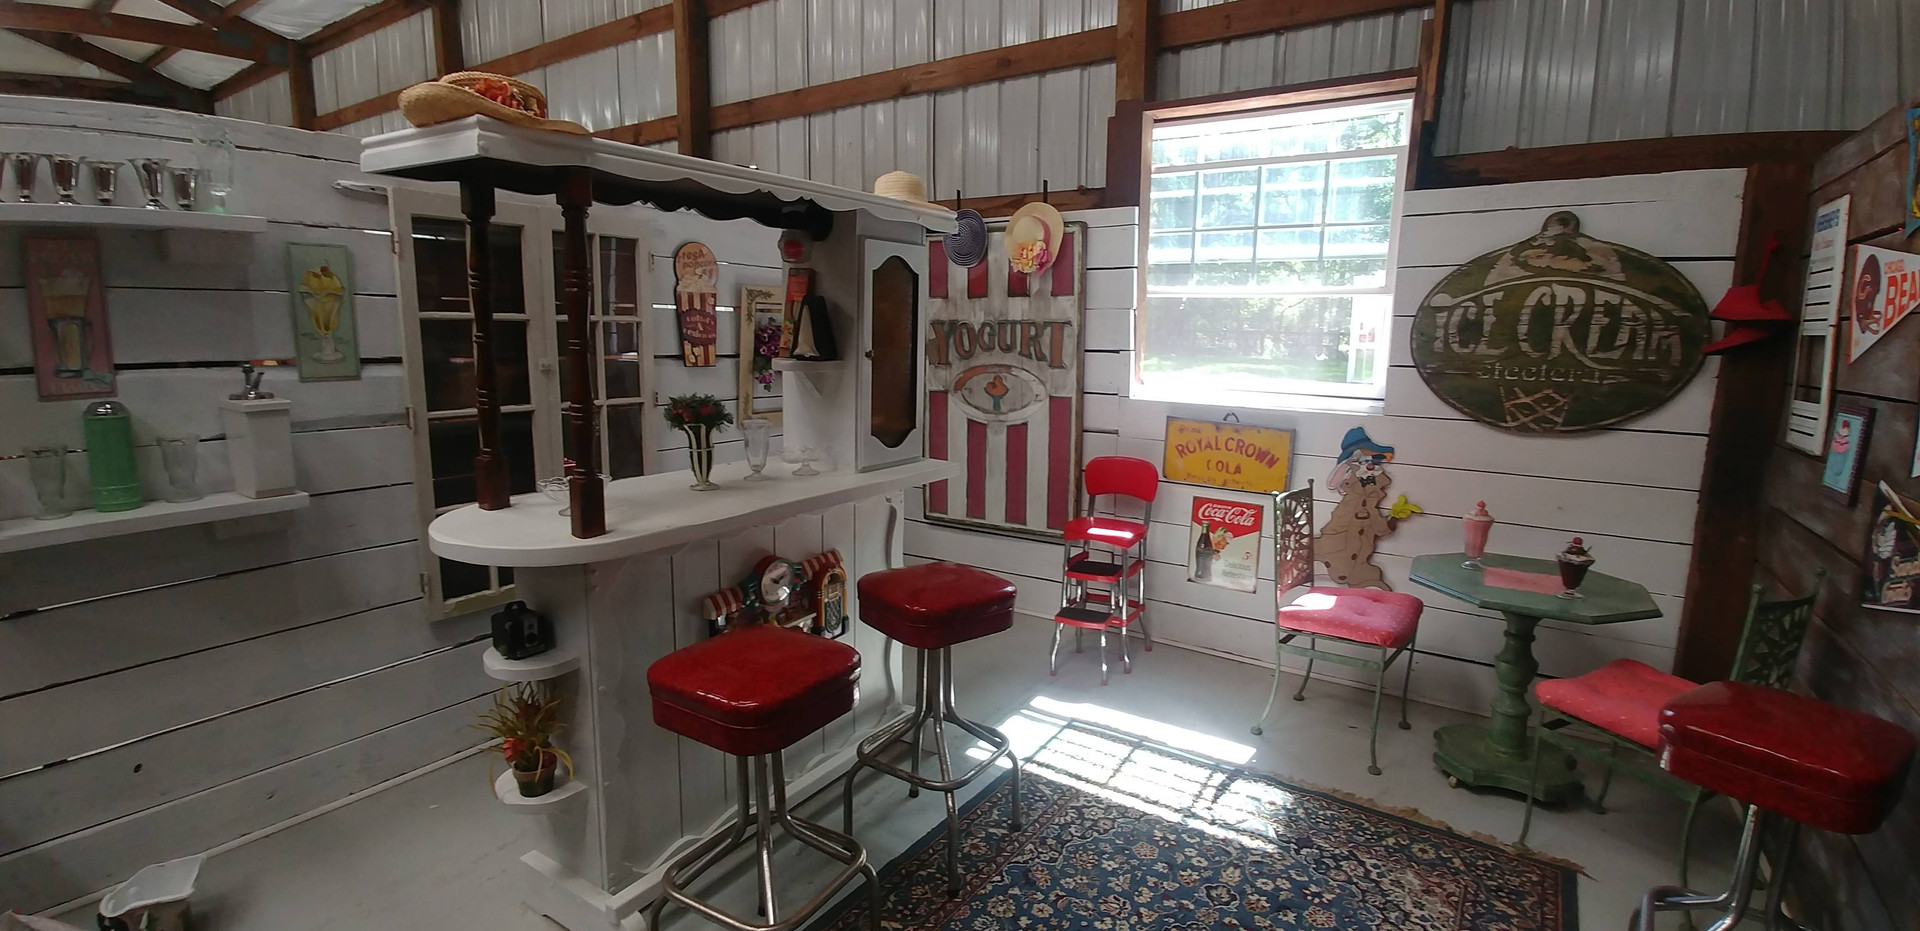 The 1950's Soda Shoppe - recently painted!